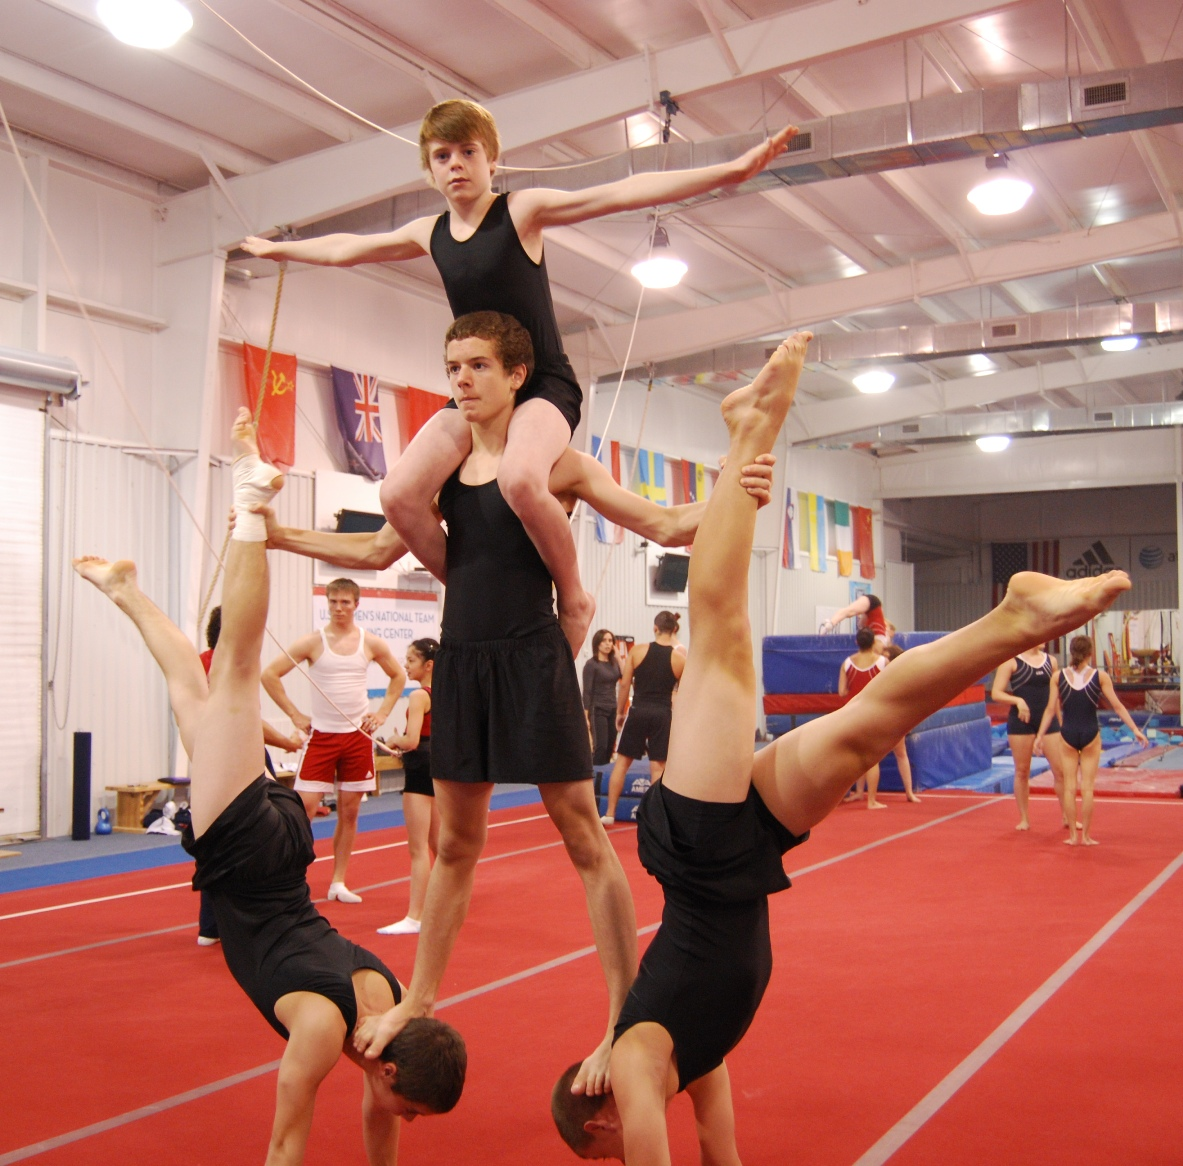 Oakville Gymnastics Club Acrobatic Gymnastics Team: OGC MG at